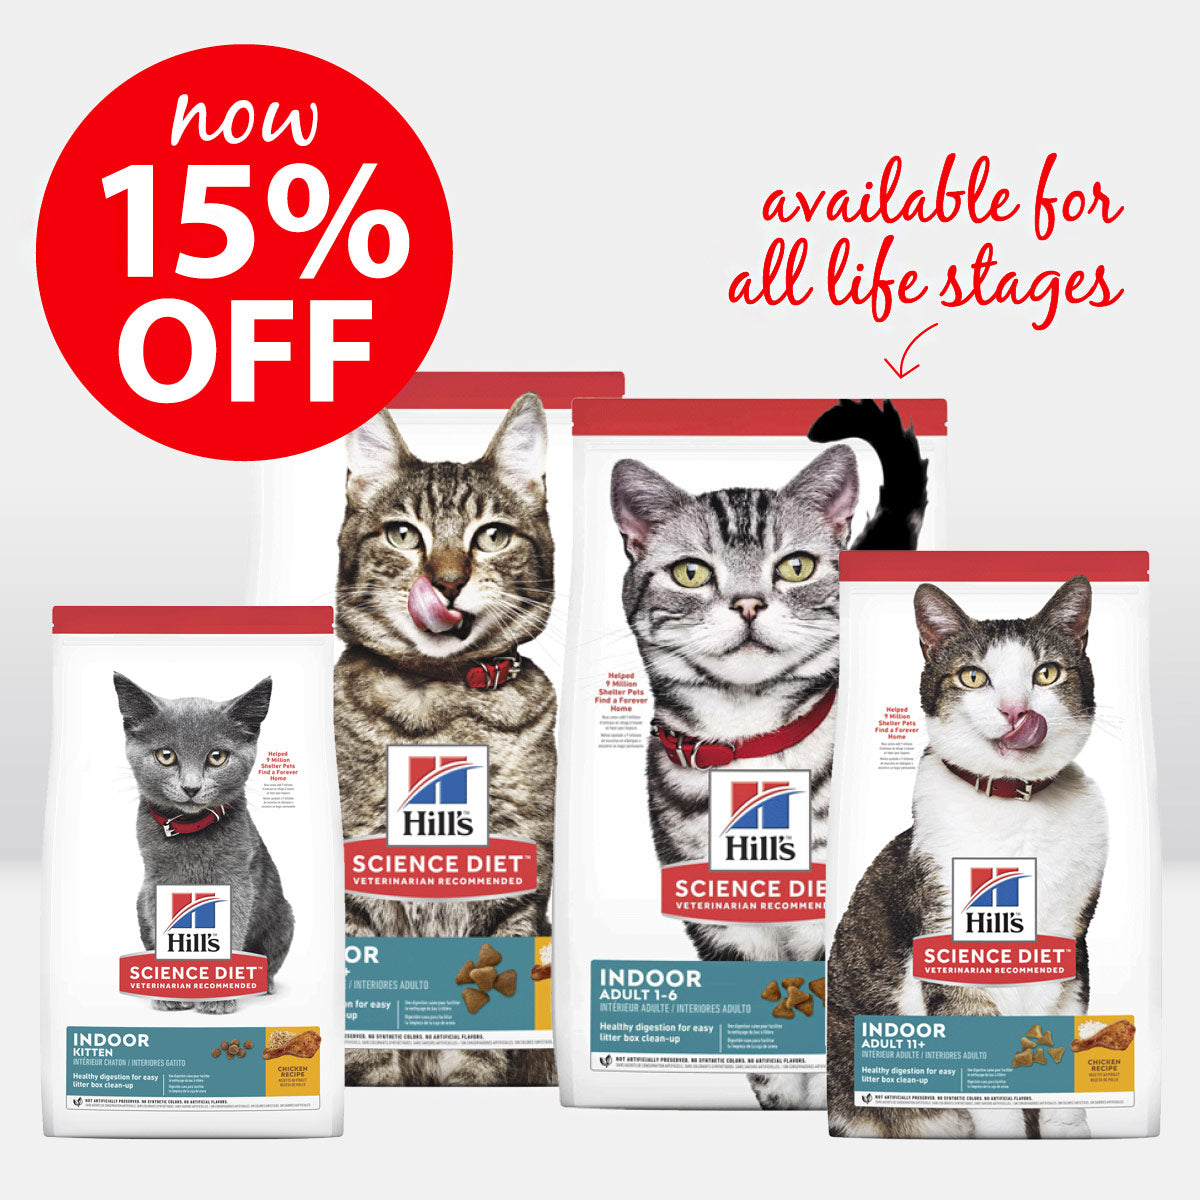 Hills Indoor Cat ON SALE